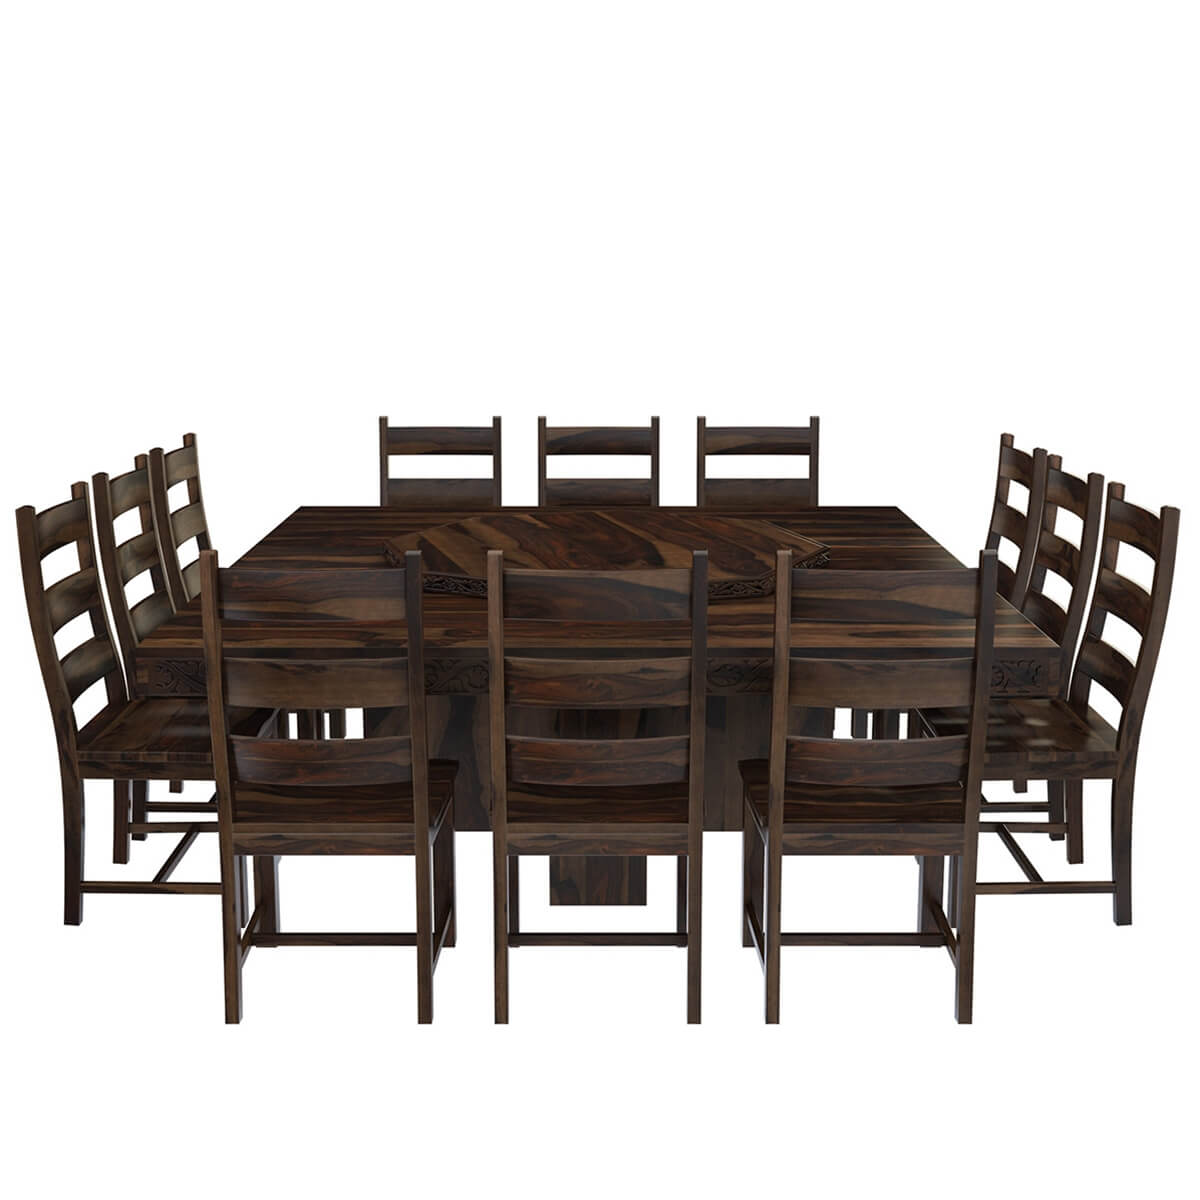 dining room tables with lazy susan | Modern Pioneer Solid Wood Lazy Susan Pedestal Dining Table ...